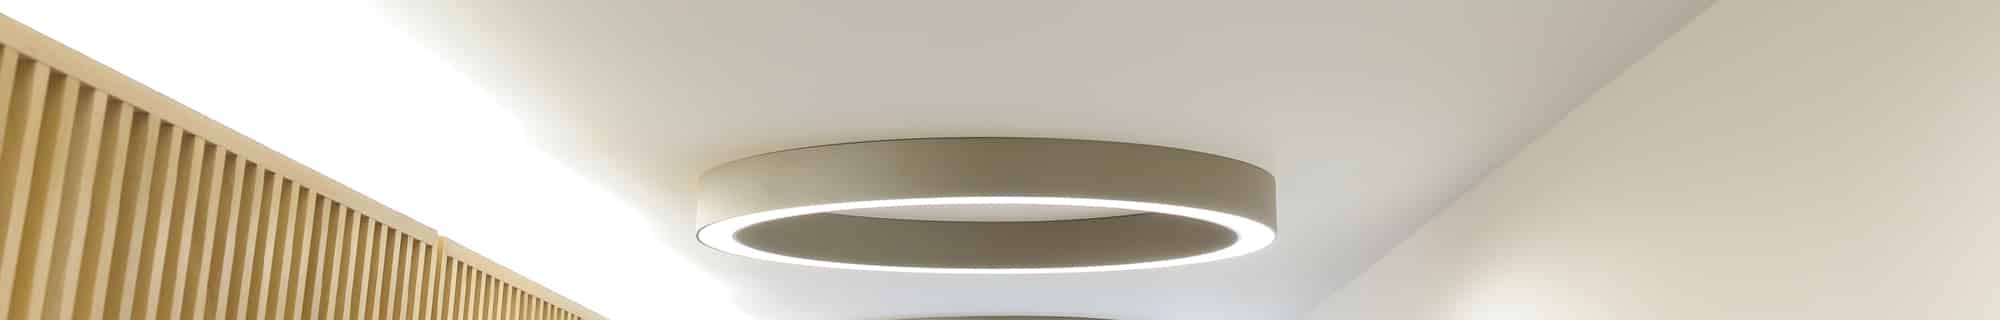 Gold Halo - Ring LED Light